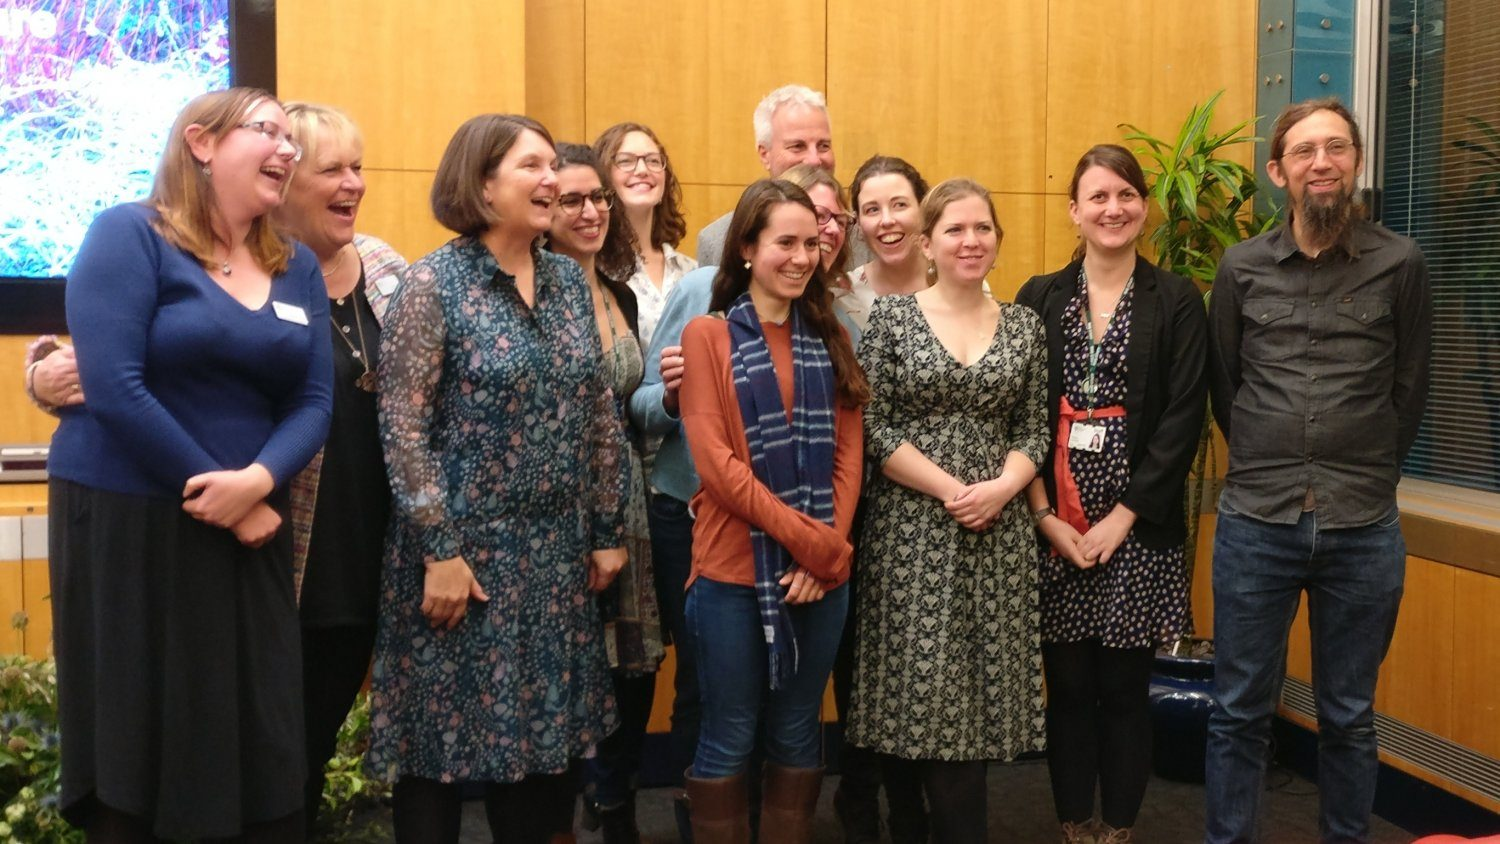 Sue Biggs RHS Director General & Professor Nicola Spence (2nd & 3rd from the left) along with some of the RHS Science team